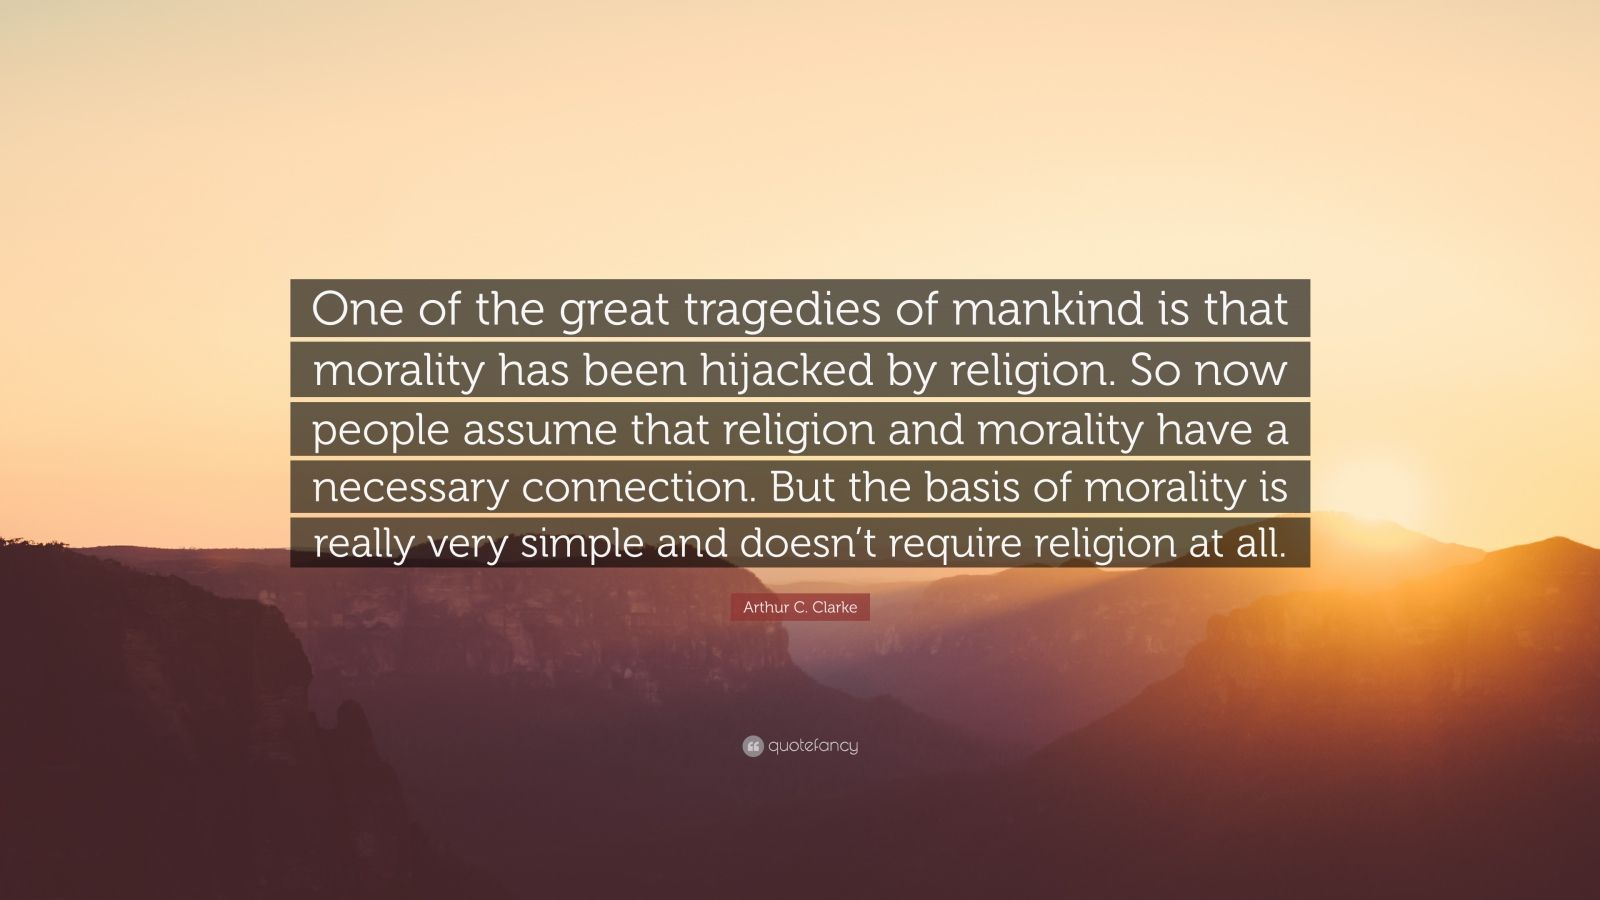 """Arthur C. Clarke Quote: """"One of the great tragedies of mankind is that morality has been hijacked by religion. So now people assume that religion and morality have a necessary connection. But the basis of morality is really very simple and doesn't require religion at all."""""""